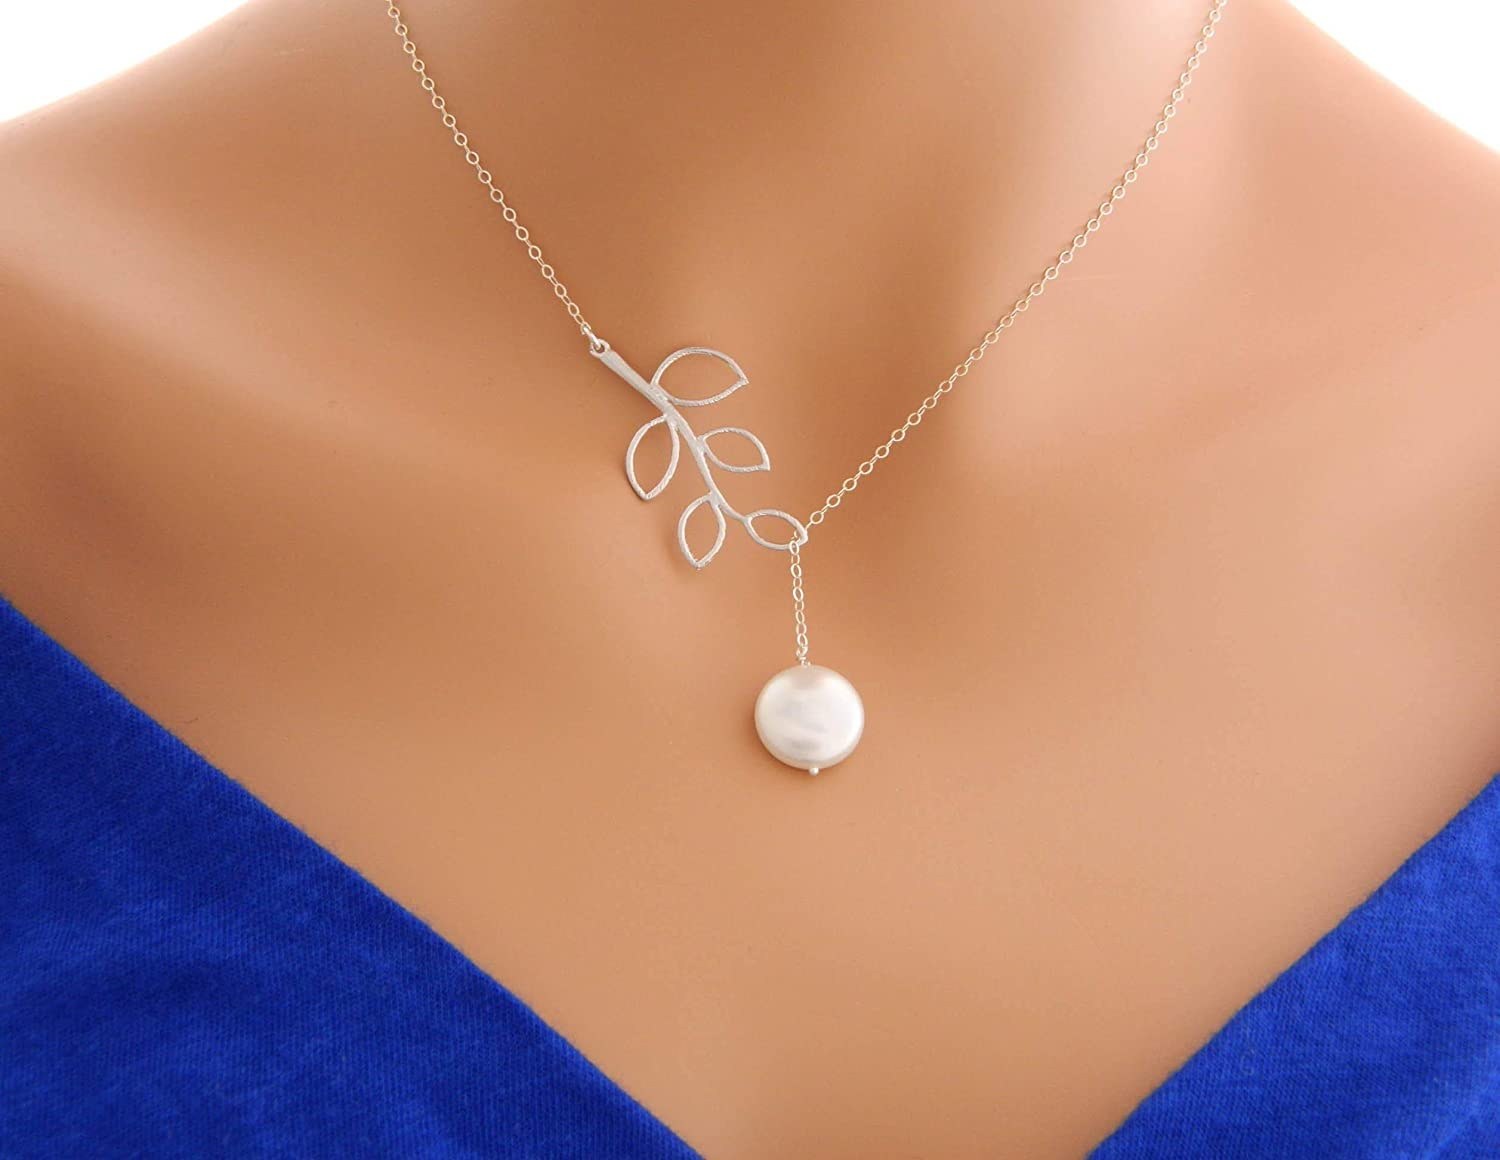 bridesmaids gift pearl necklace Christmas for her bohemian jewelry chain necklace artisan jewelry chain lariat Pearl lariat necklace